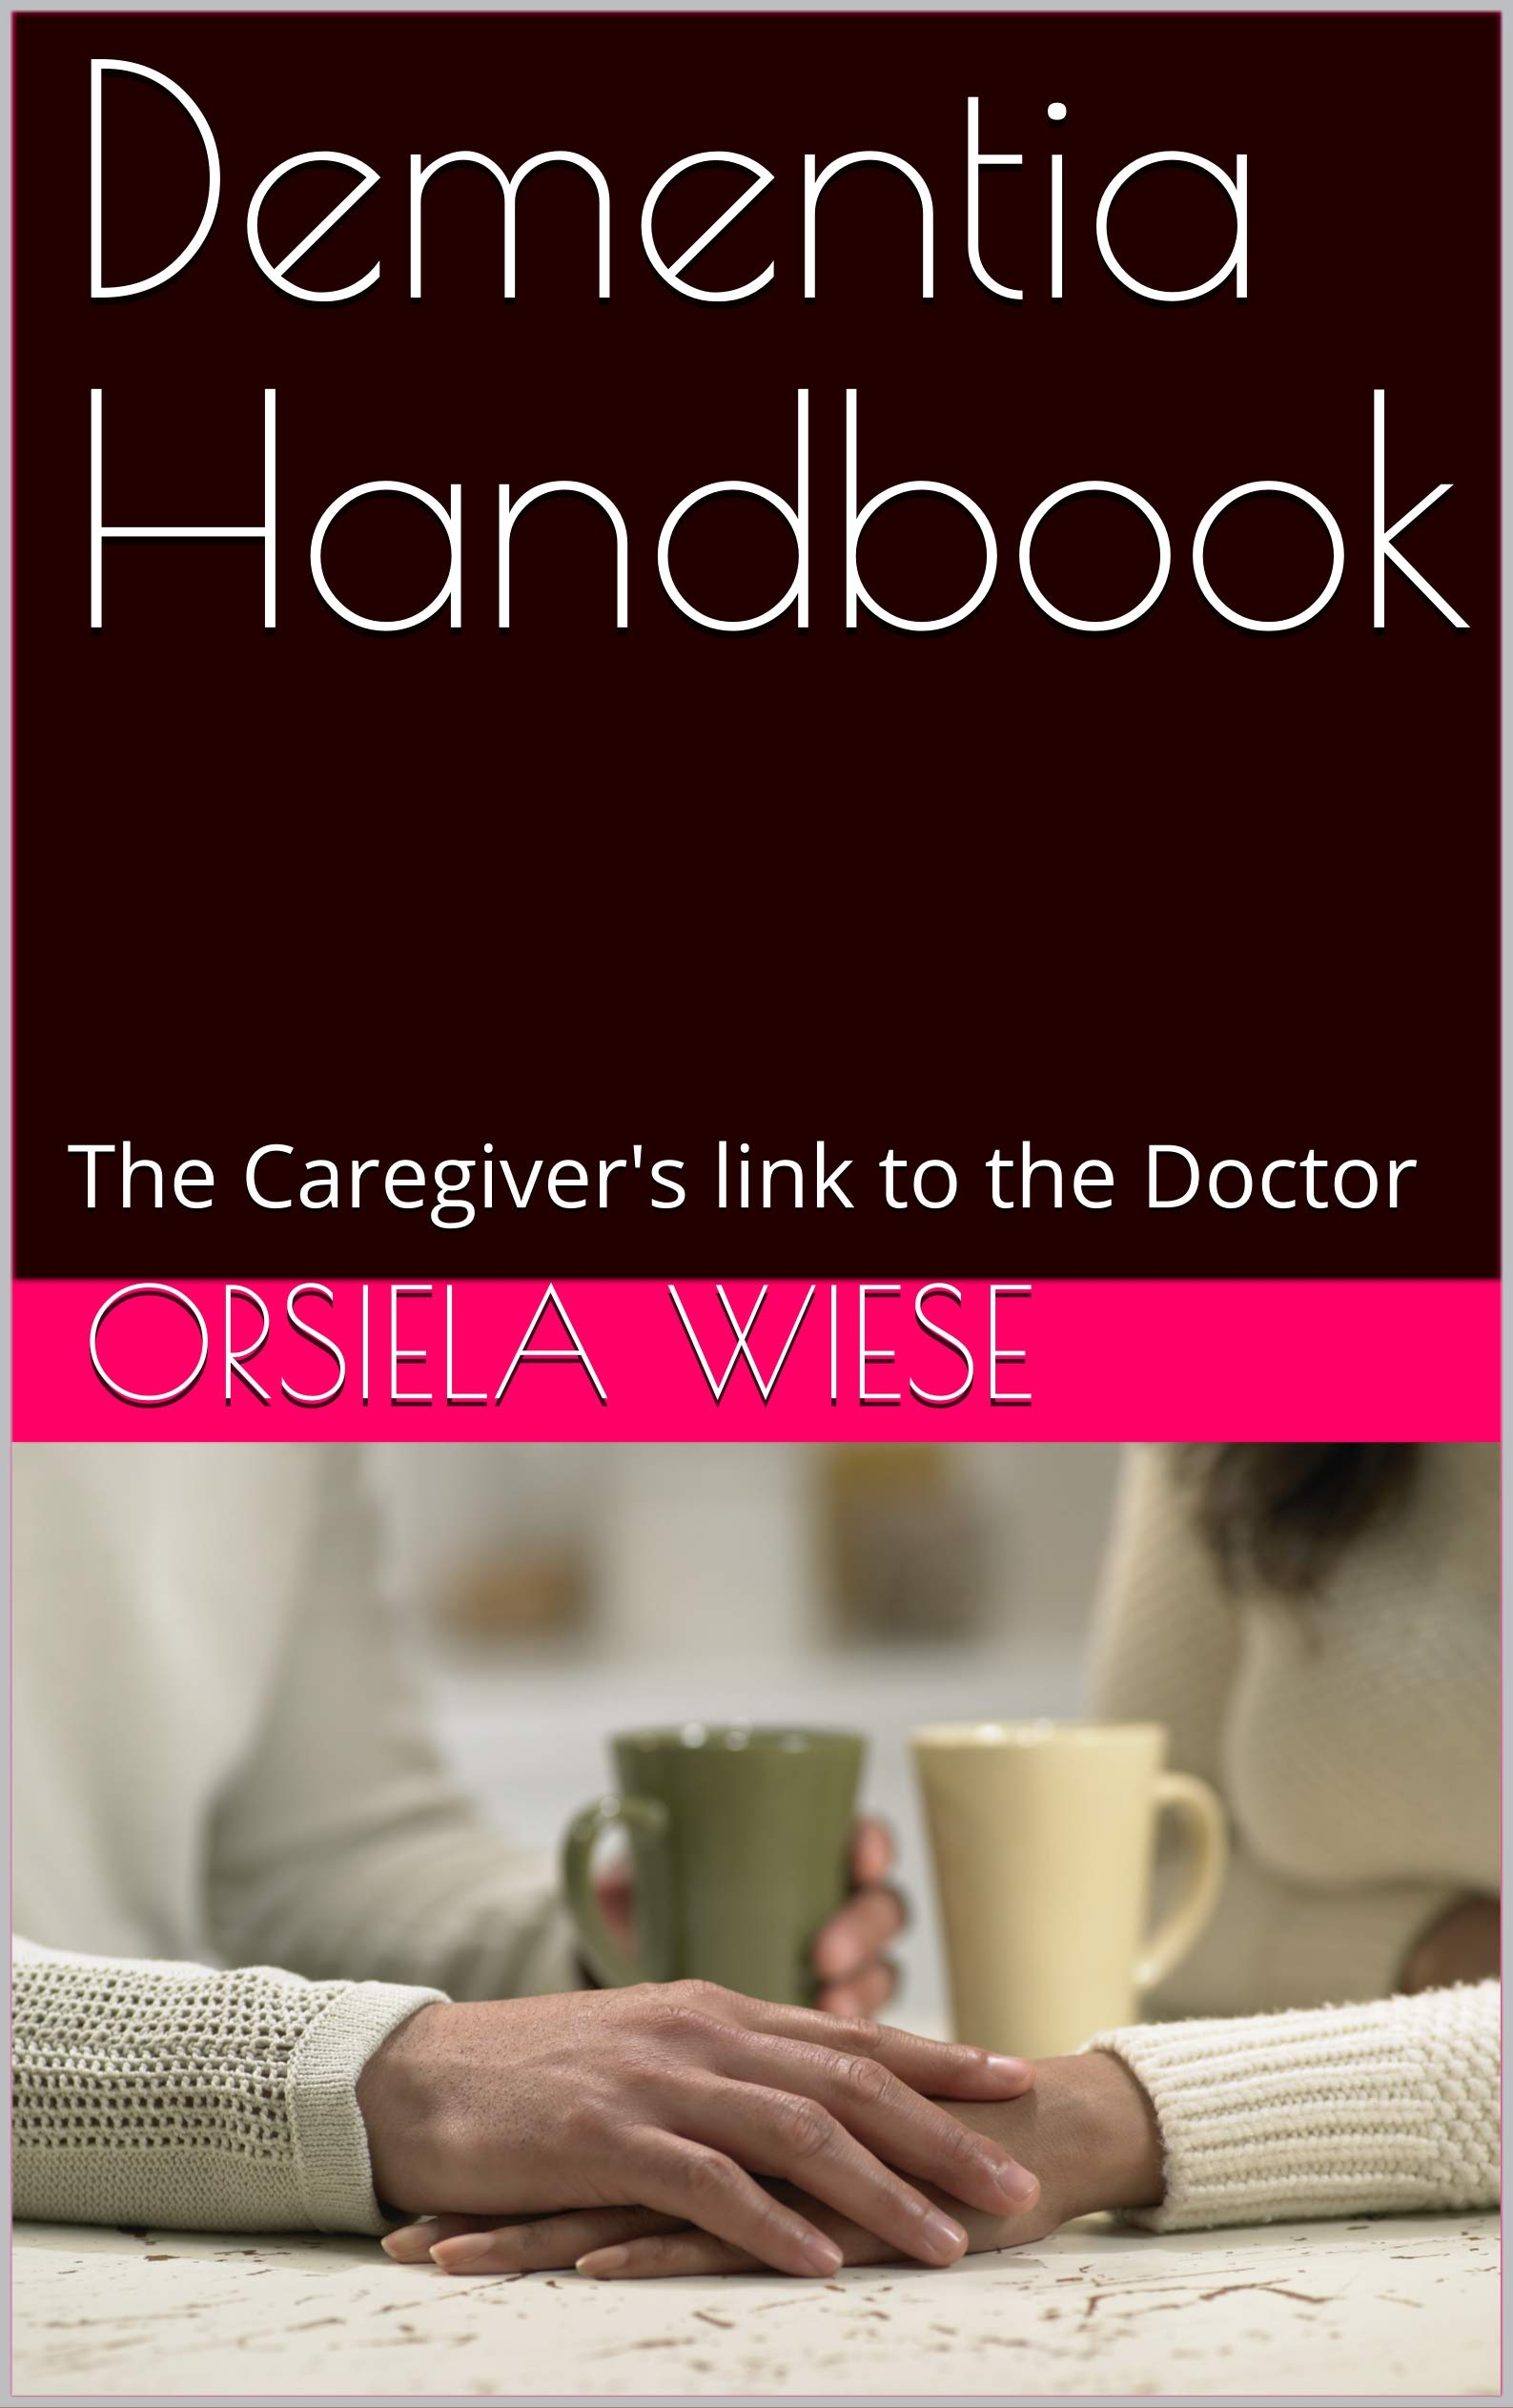 Dementia Handbook: The Caregiver's link to the Doctor